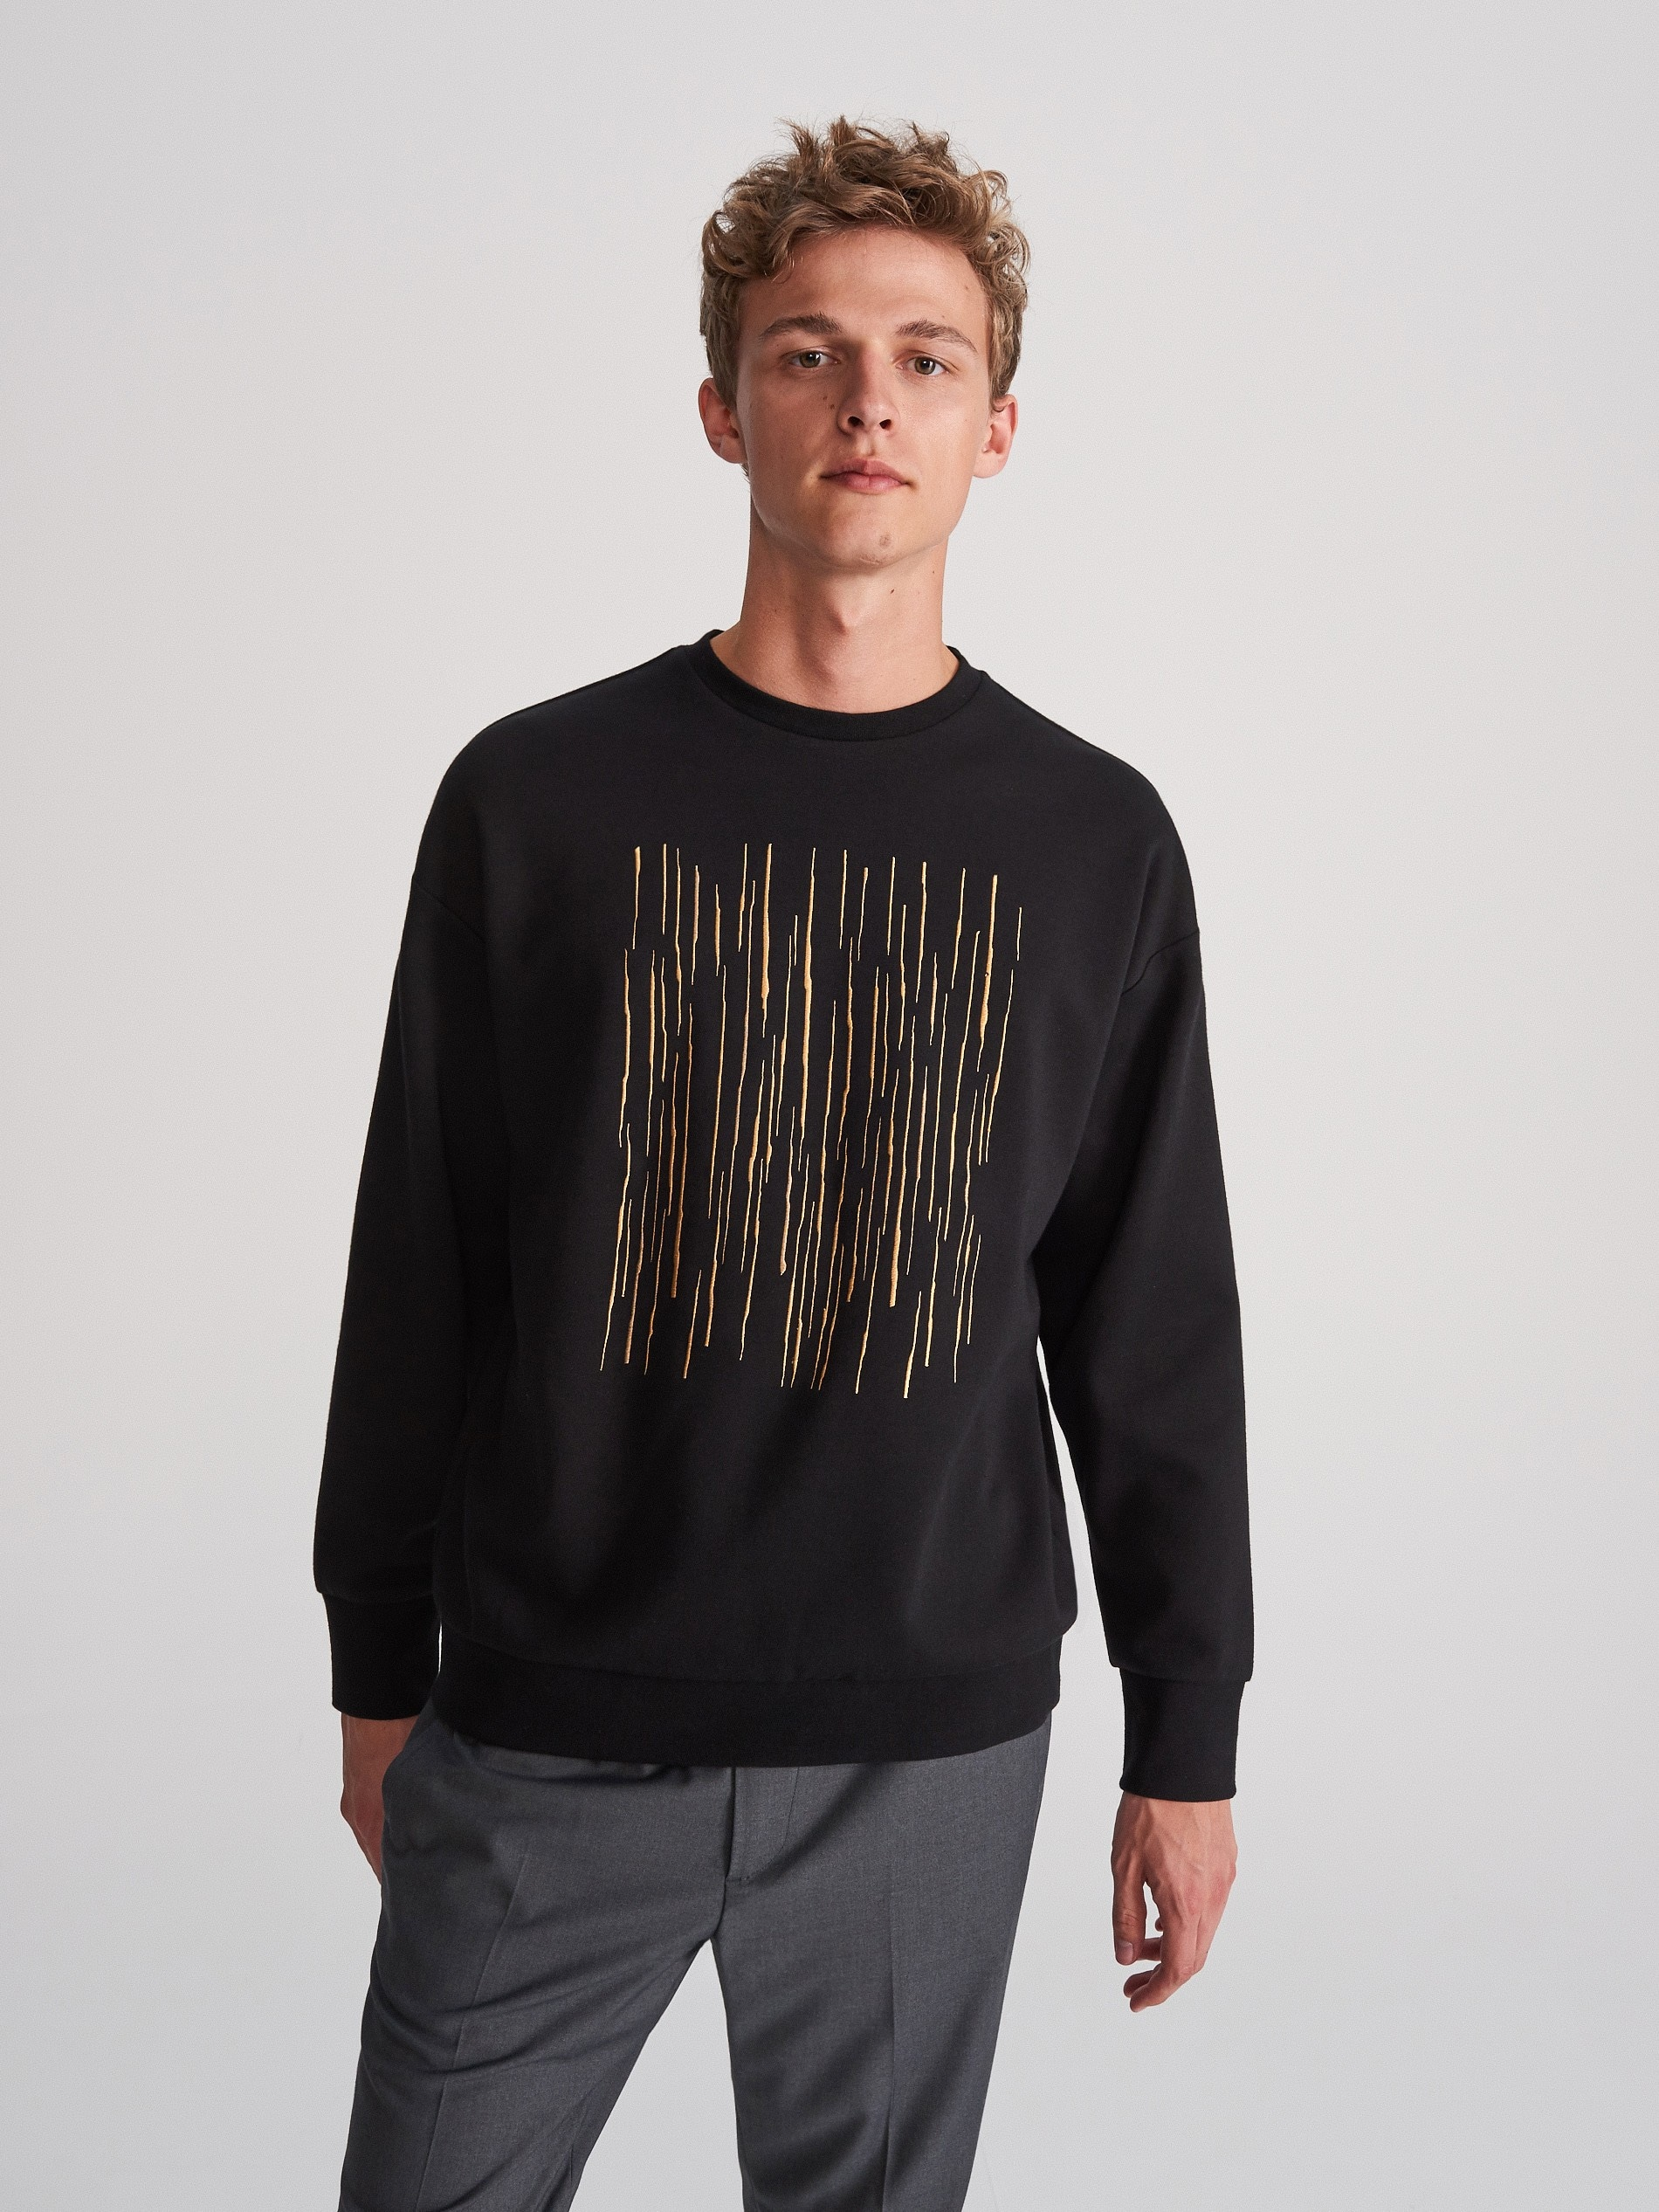 Sweatshirt mit dekorativer Stickerei